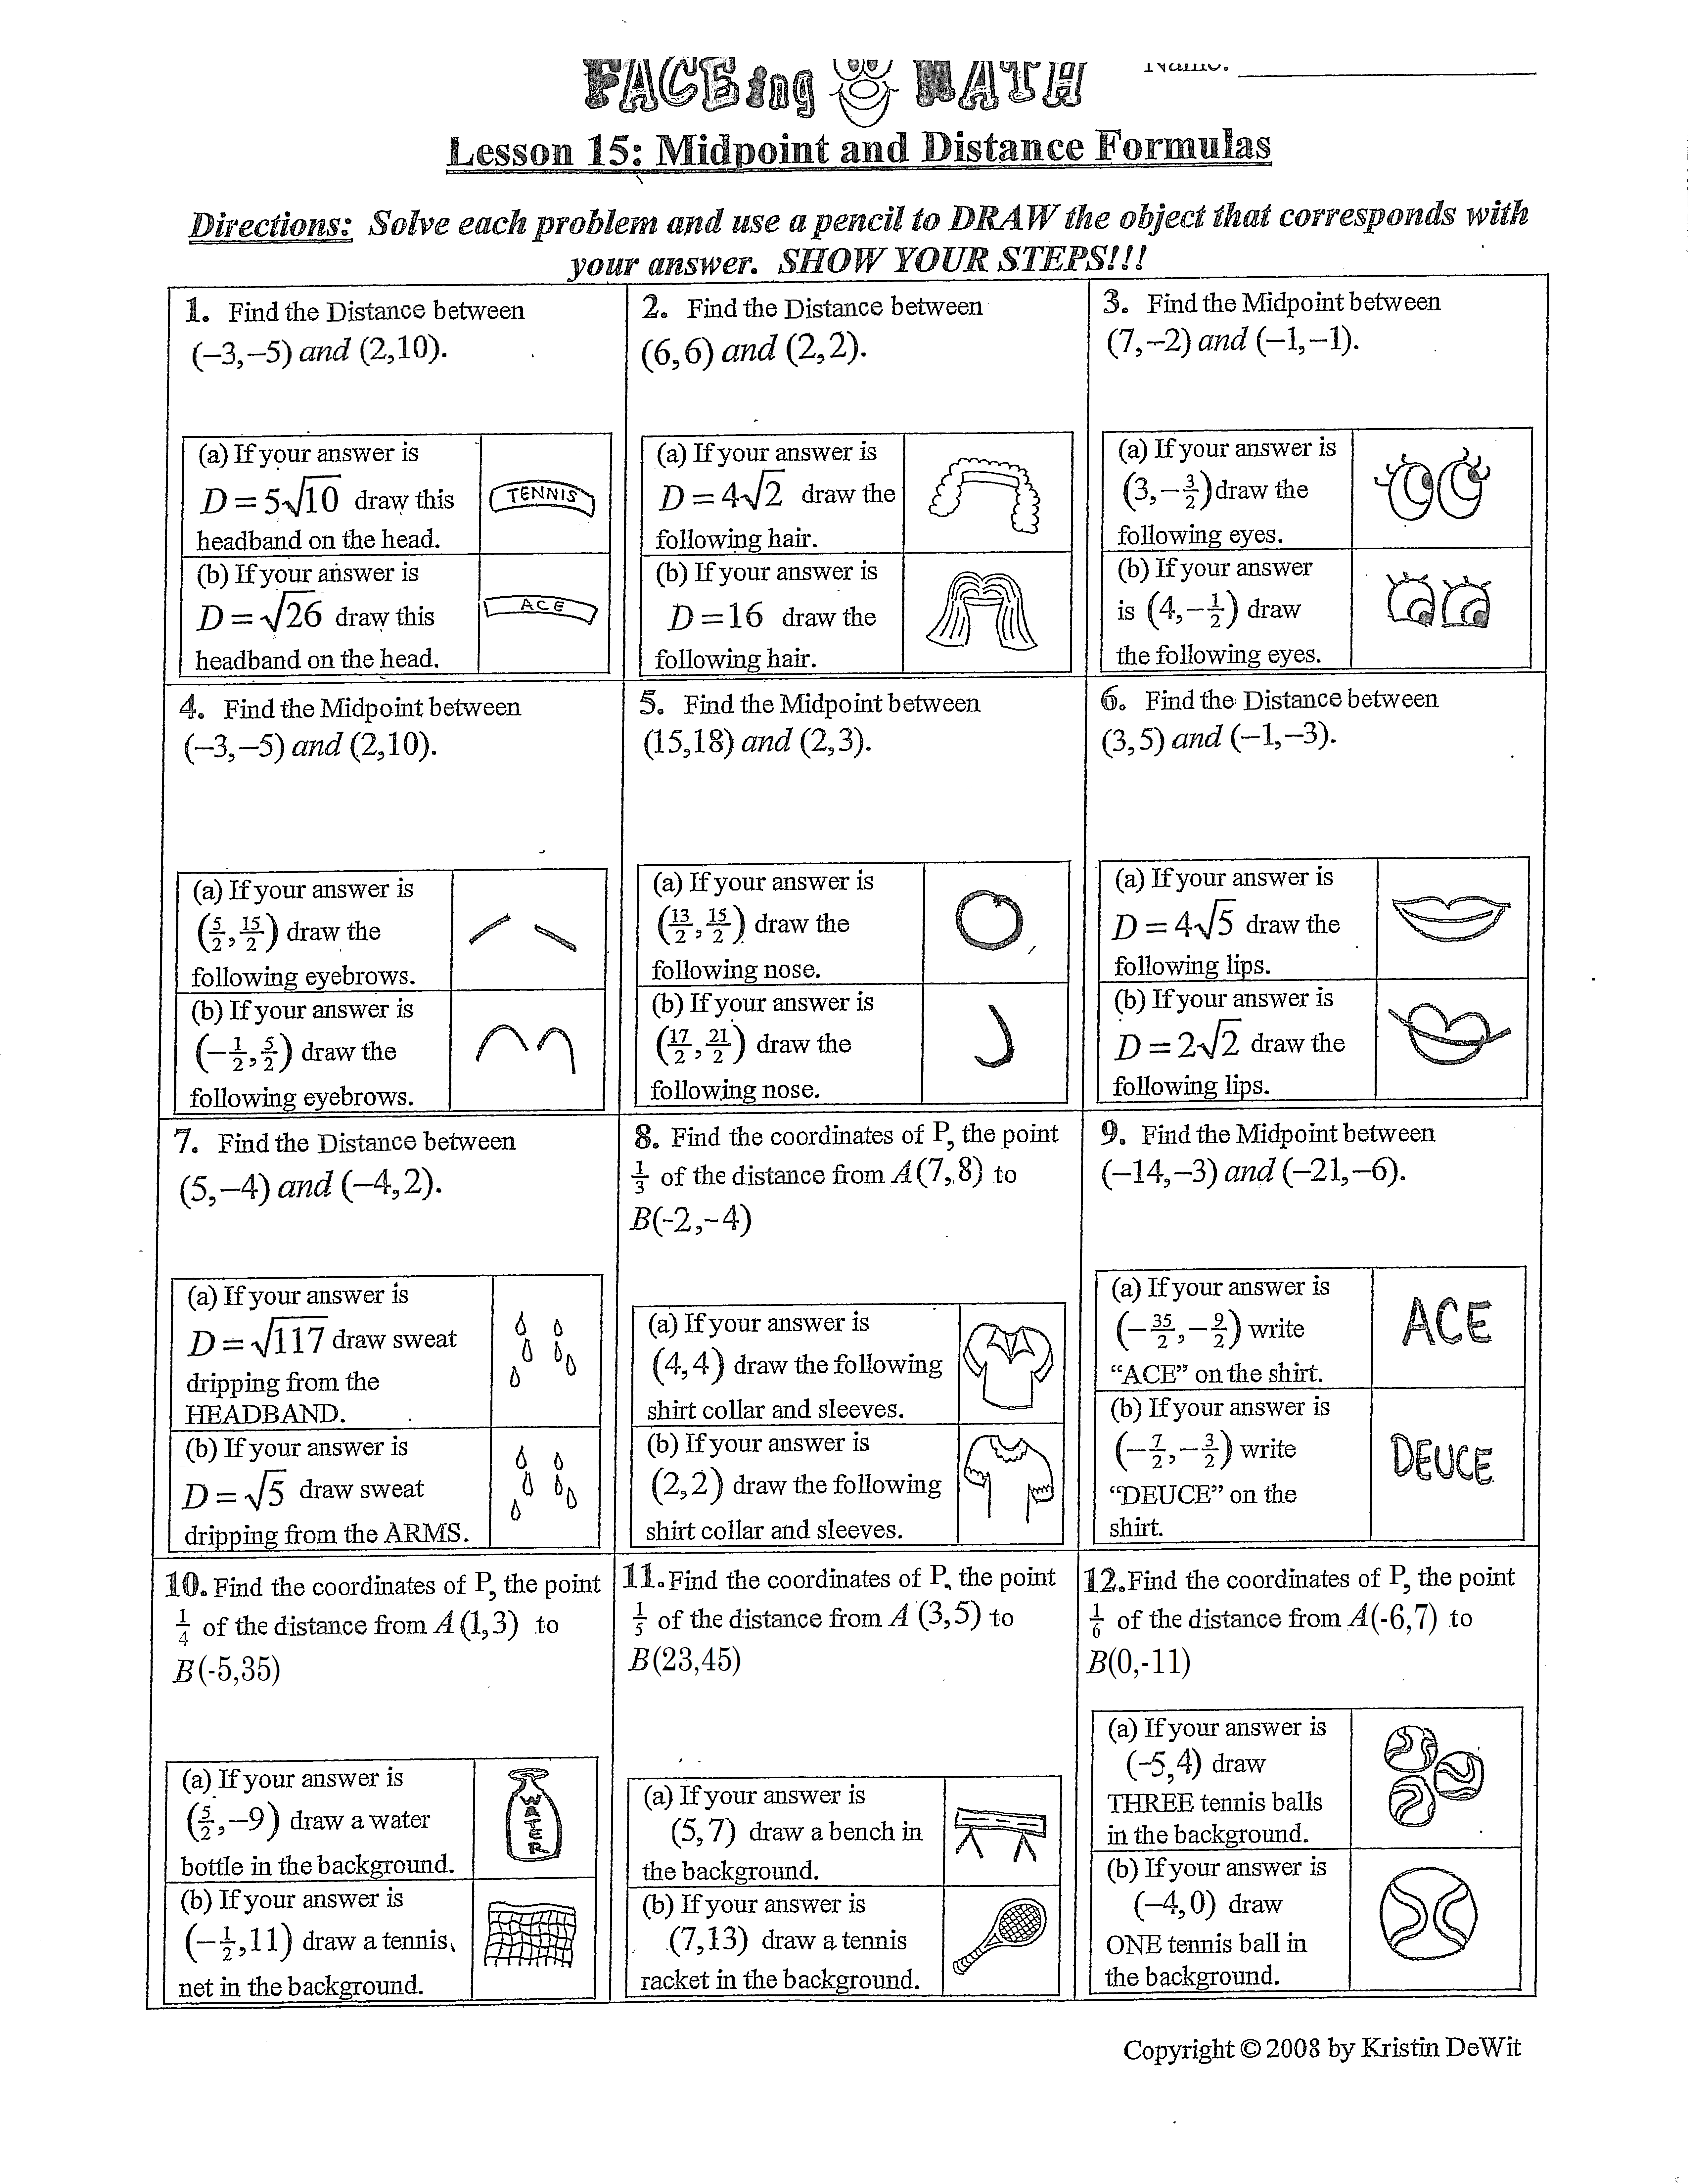 Faceing Math Printable Worksheets The Best Worksheets Image | Faceing Math Printable Worksheets